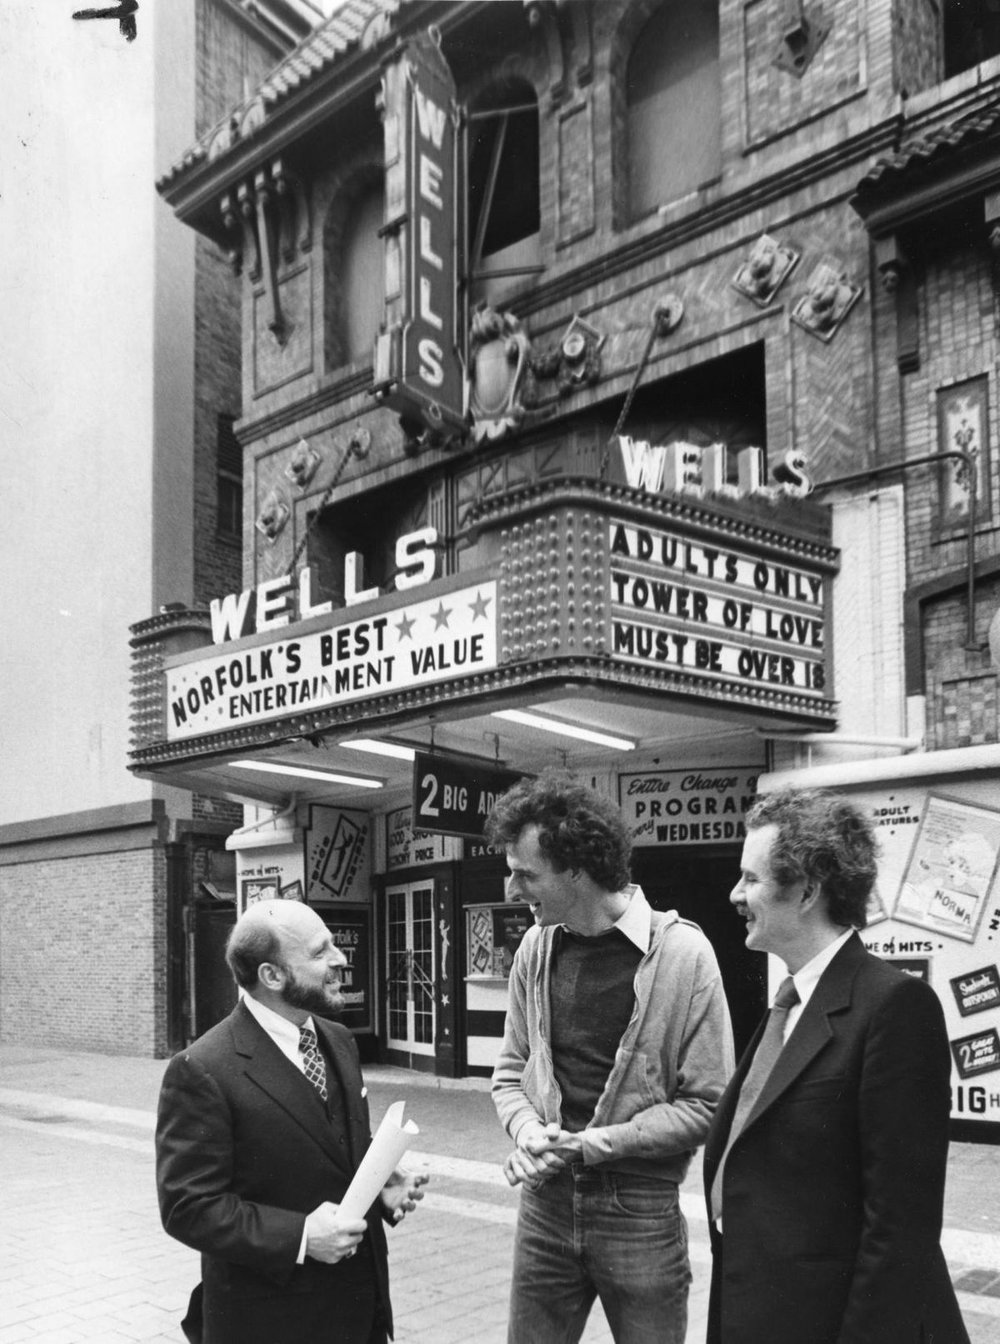 Robert Brown at the Wells Theatre in Norfolk, pictured with Chuck Kerr and Roger Morgan in 1978.